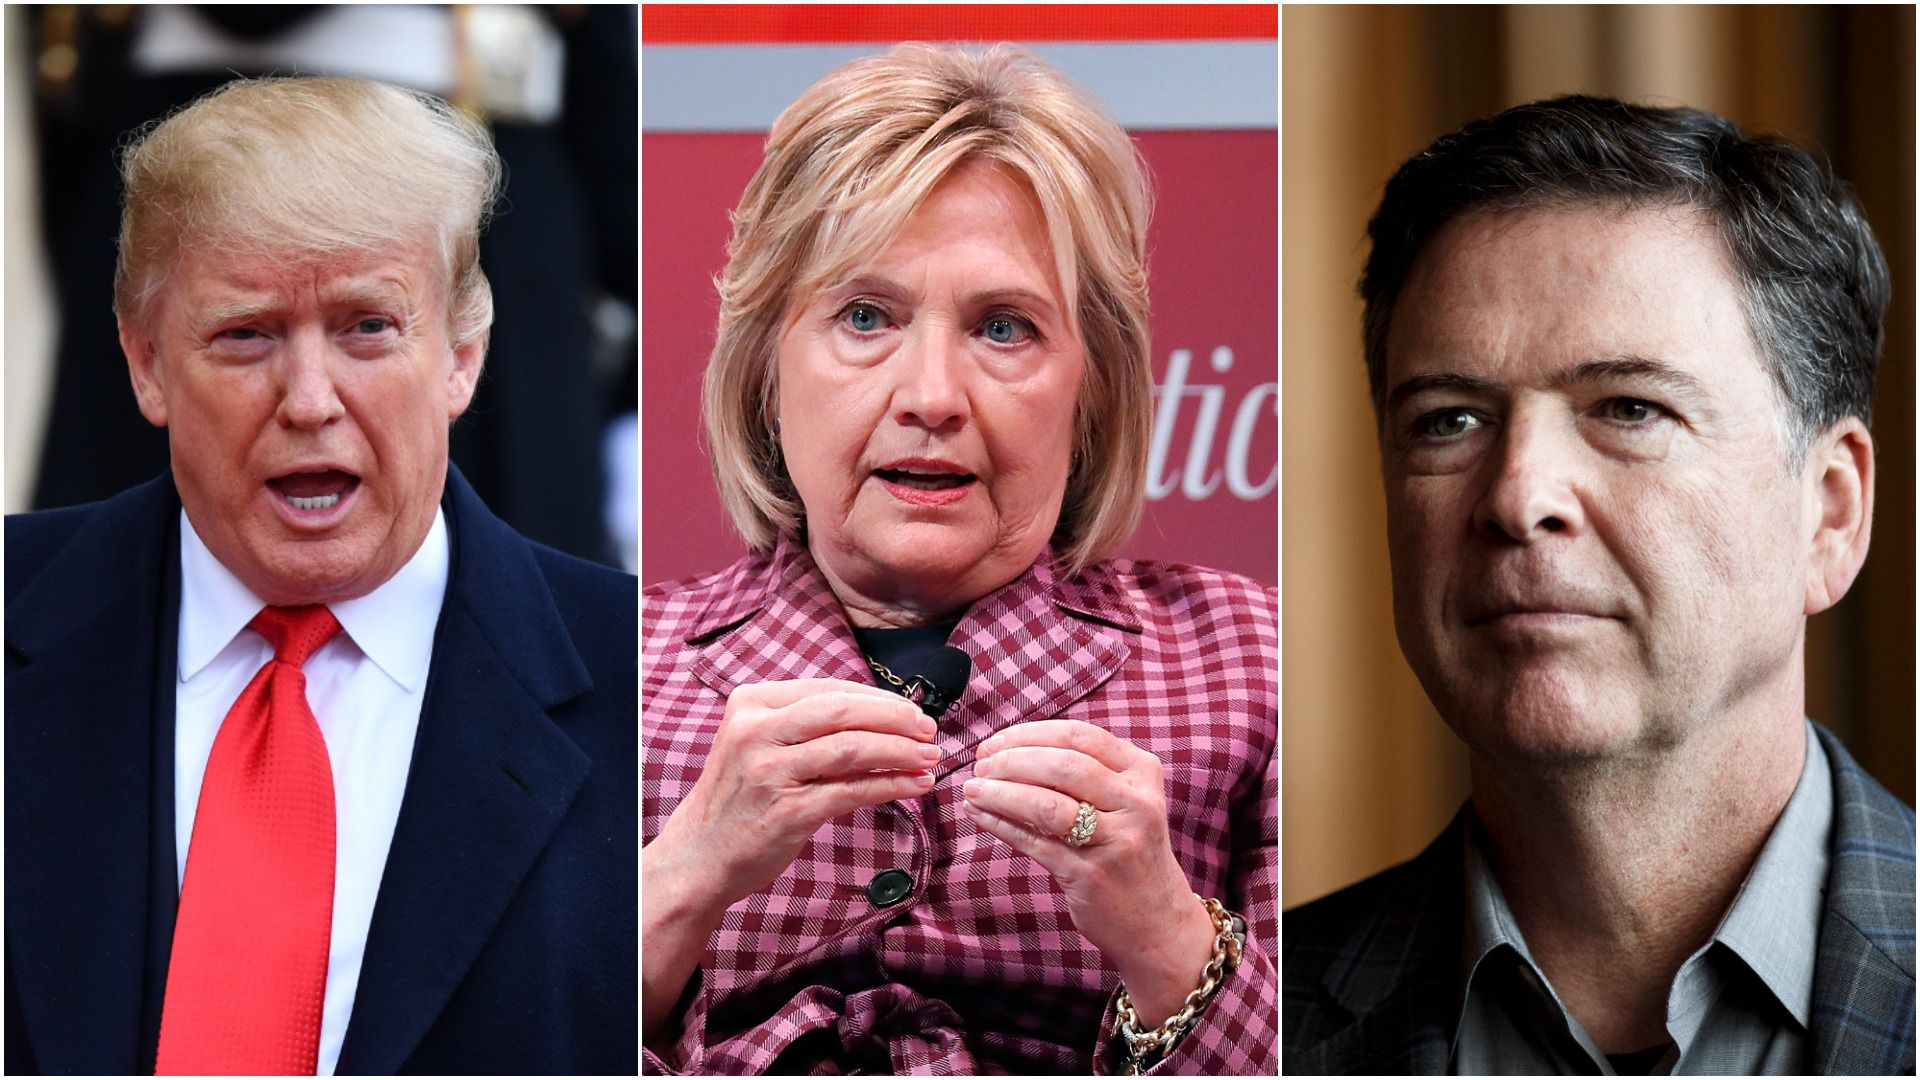 This is a photo of Donald Trump, Hillary Clinton and James Comey